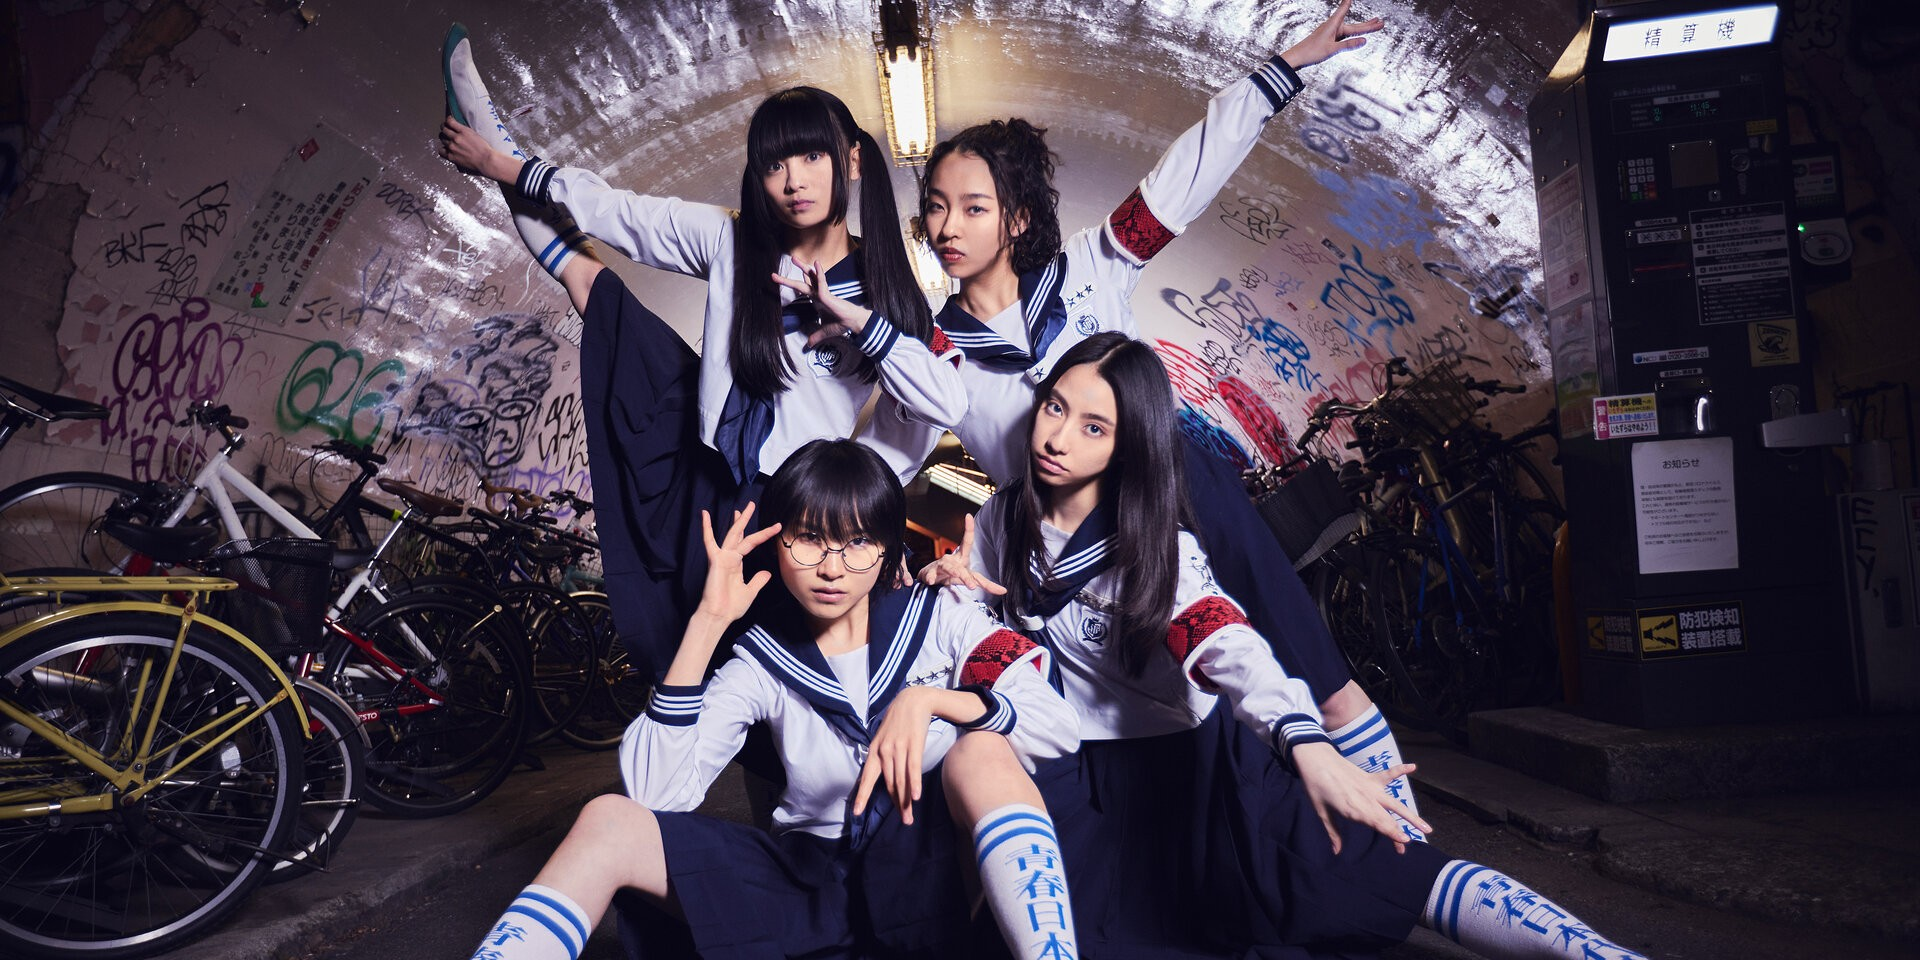 Asia Spotlight: ATARASHII GAKKO! on embracing their youth, staying comfortably weird, and joining 88rising